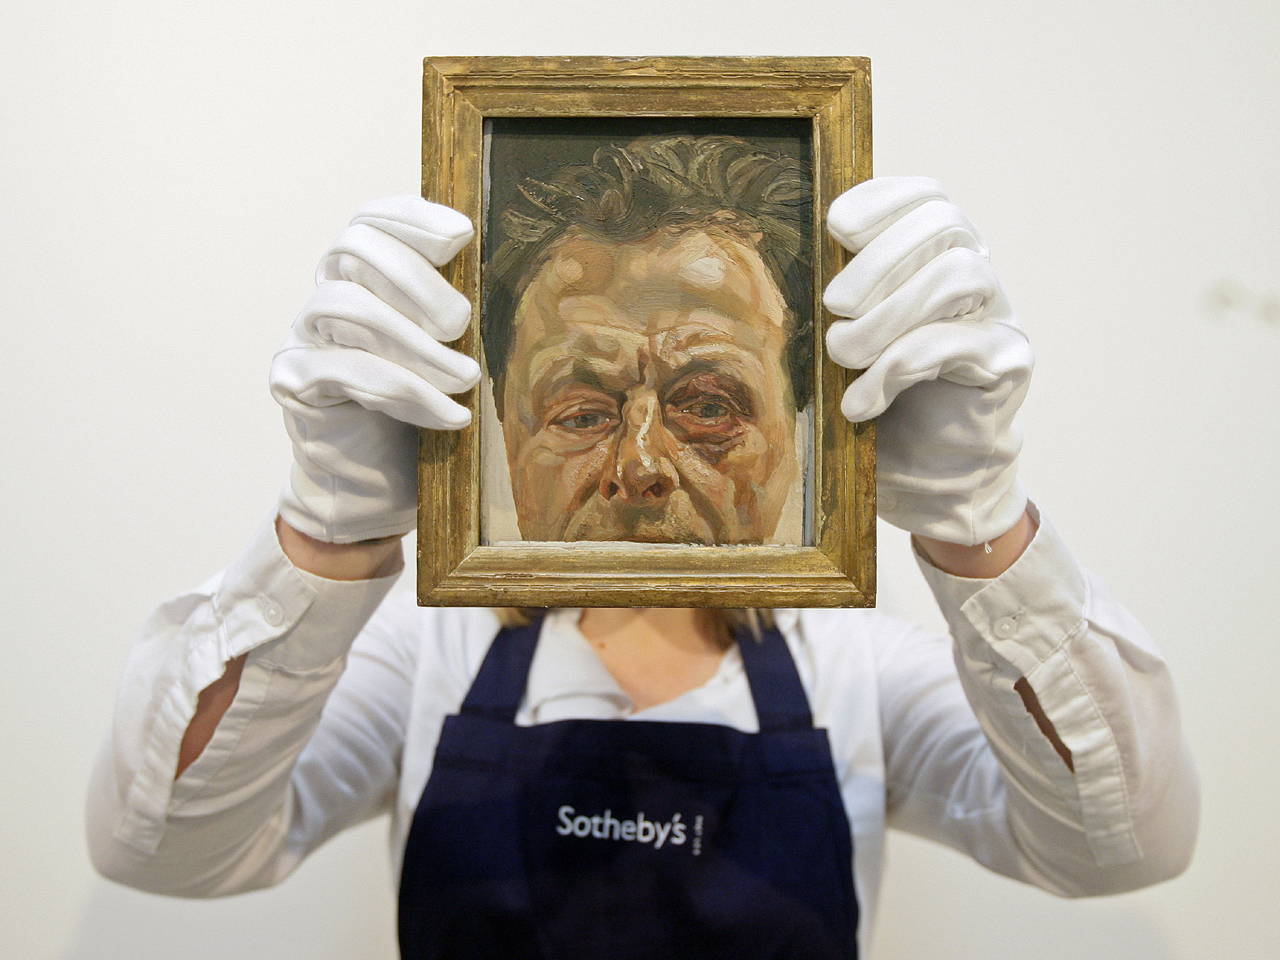 a biography of lucian freud a master of the flesh His strenuously worked surfaces portray bodies and faces in ways that convey a punishing sense of life lived — of too, too solid flesh lucian freud.